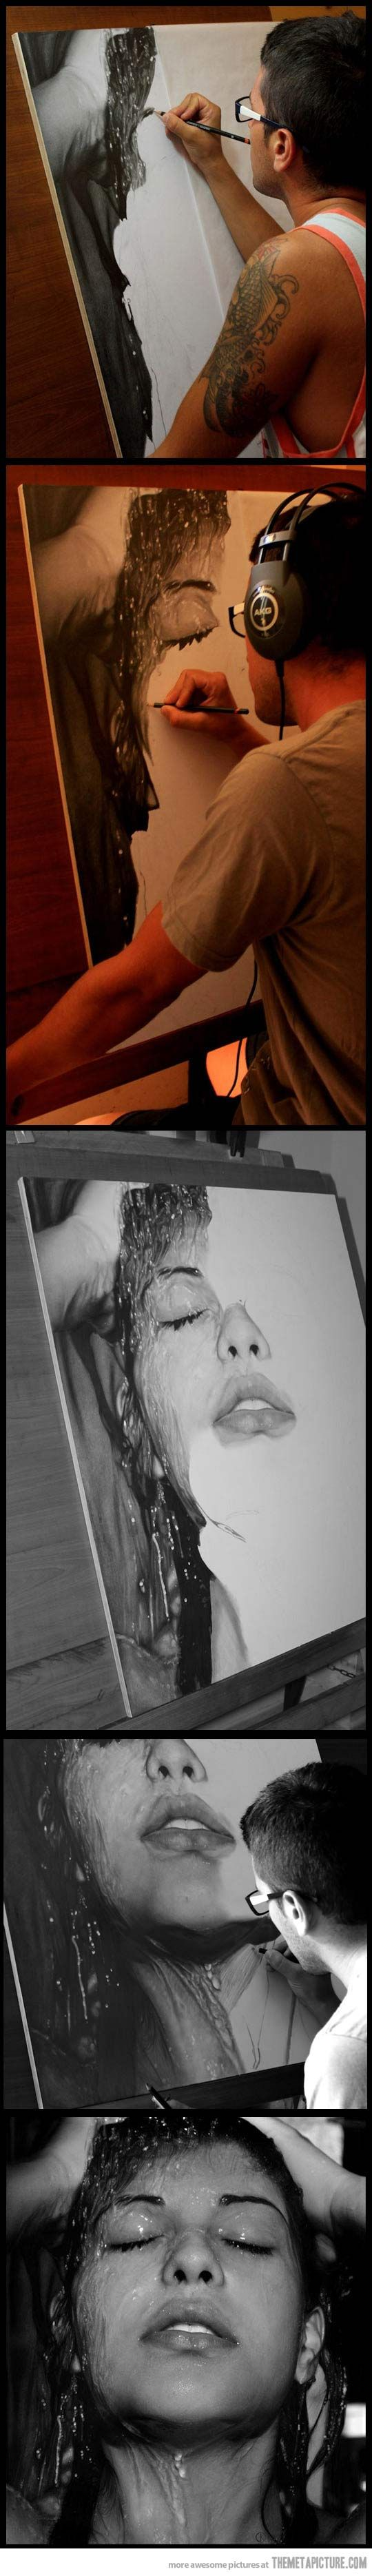 Photorealistic pencil drawing by Diego Fazio, Italy-based artist better known as DiegoKoi